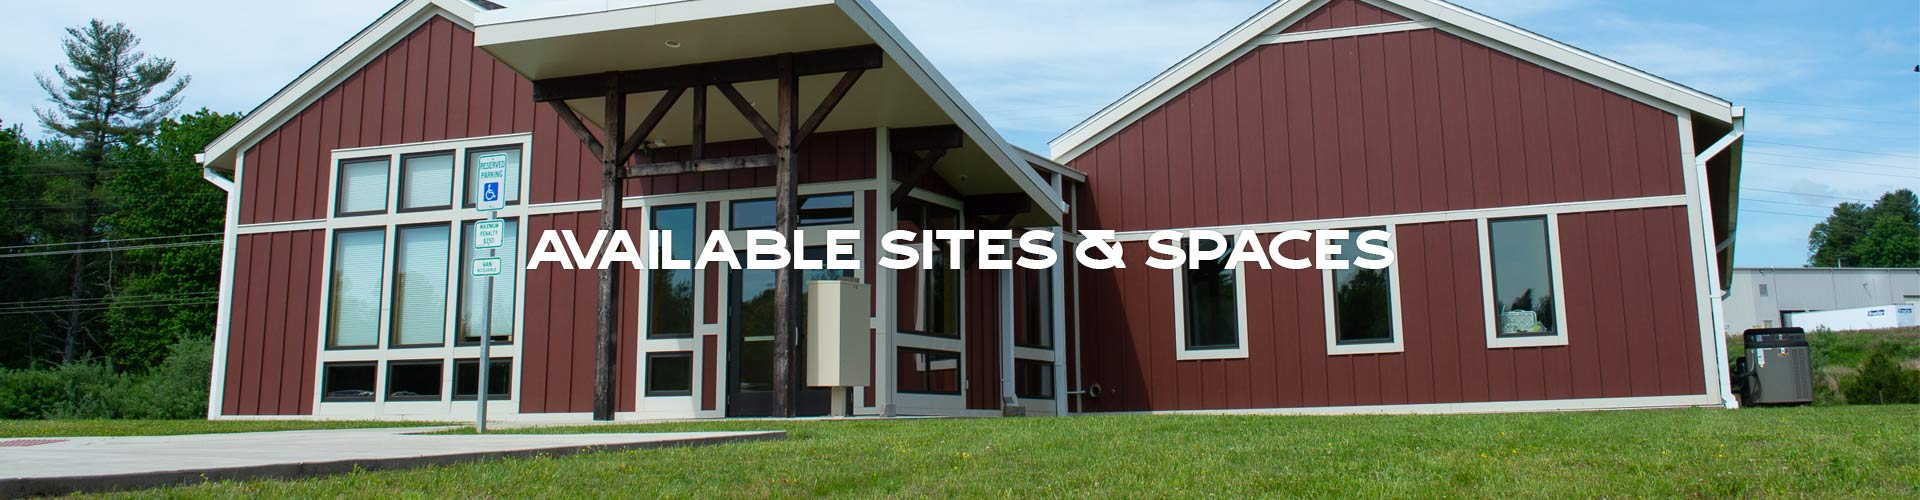 sites-and-spaces-header